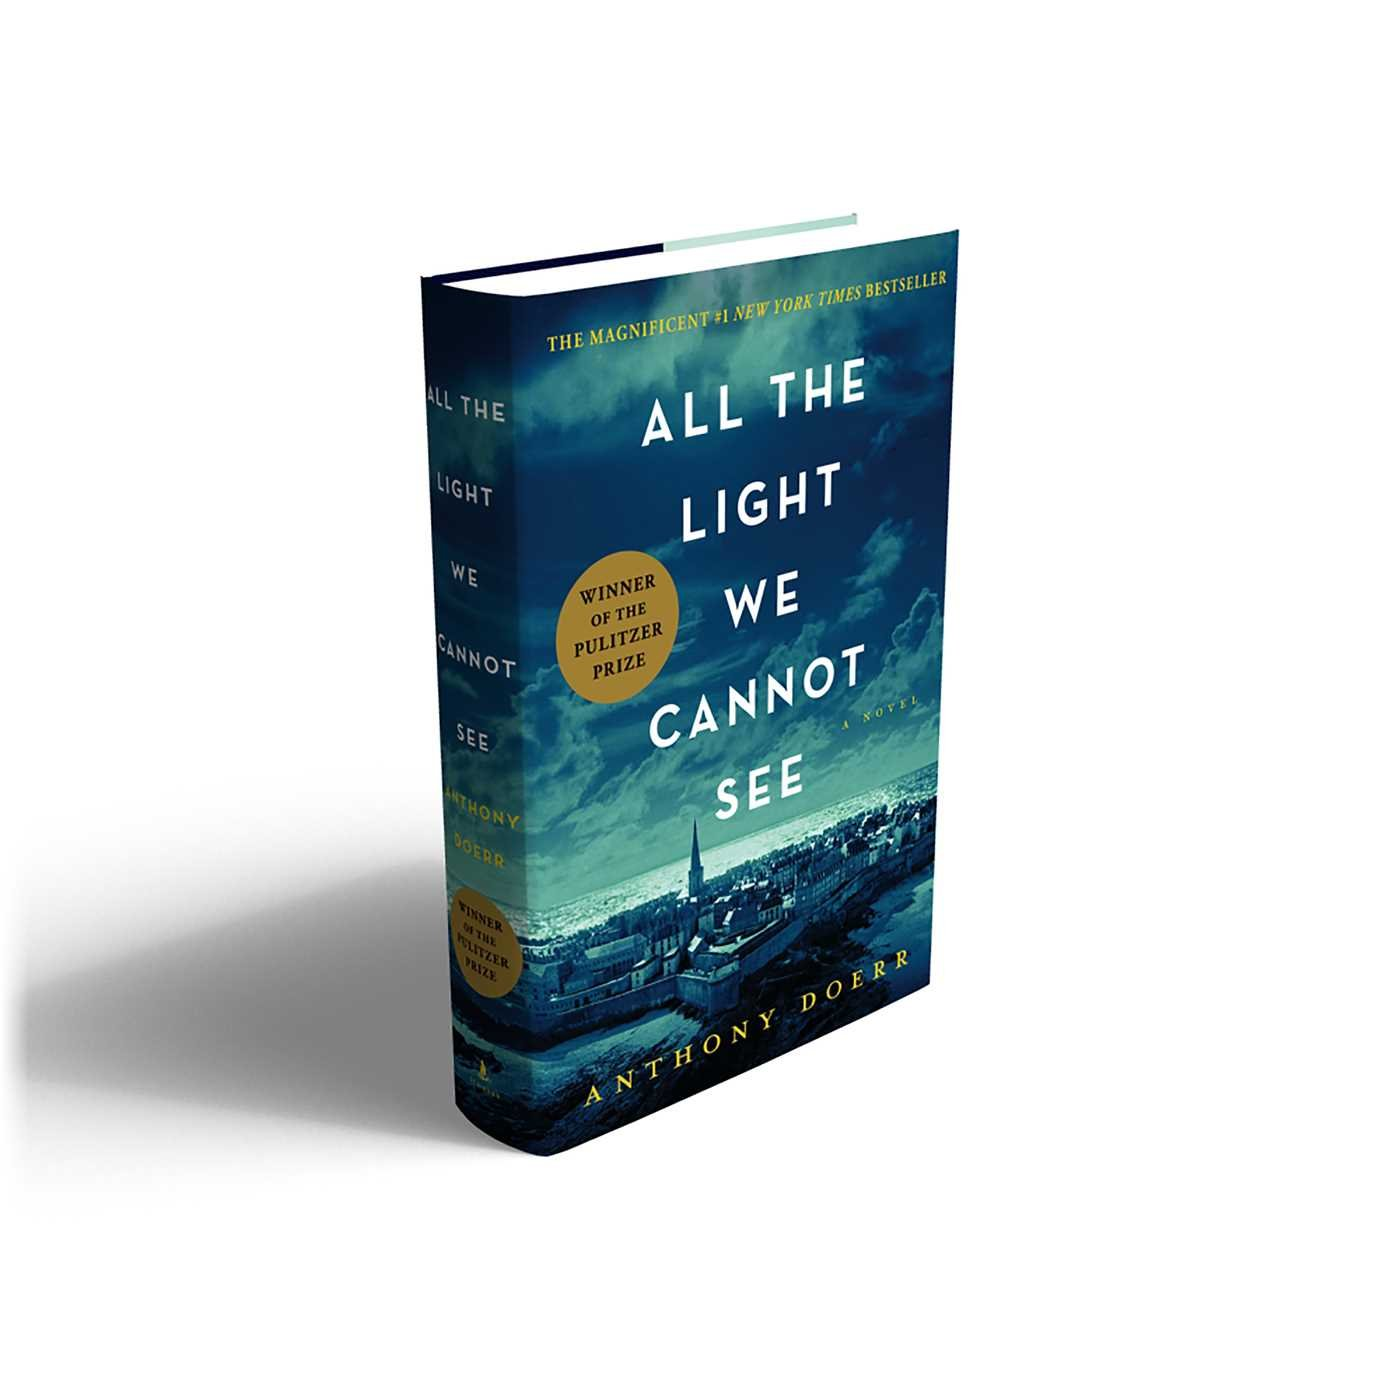 PageTurners: All the Light We Cannot See